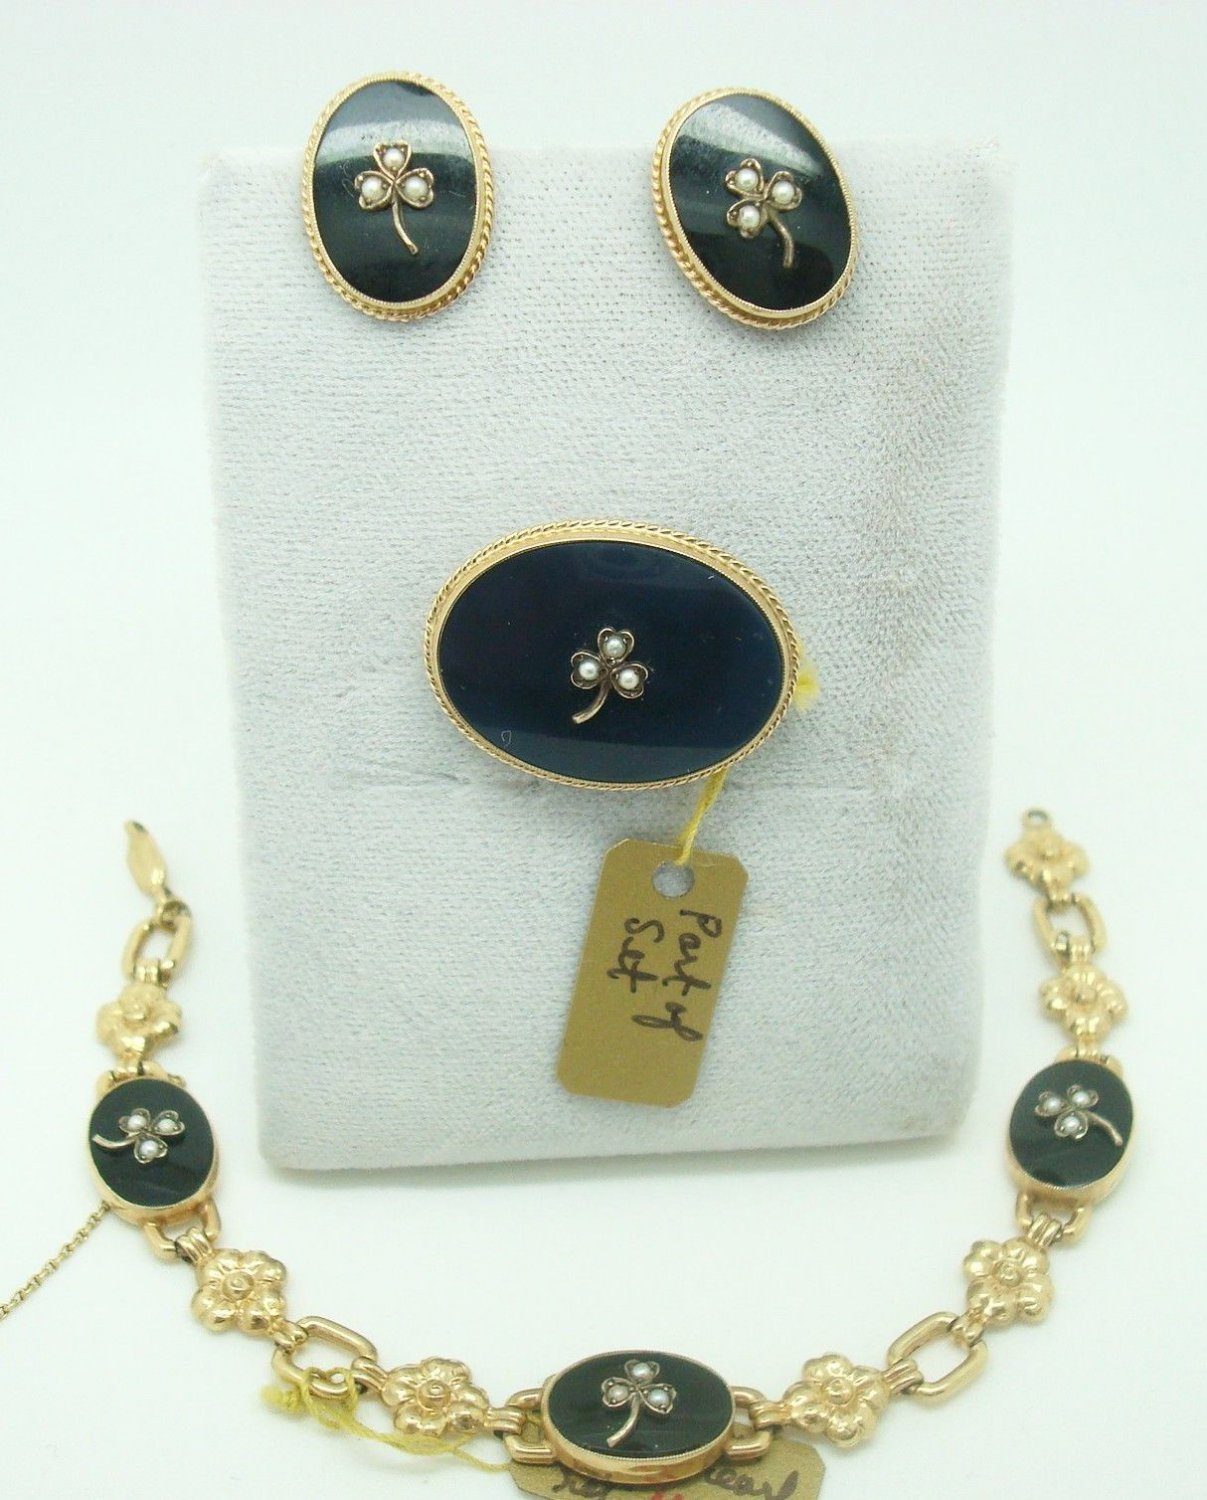 10K Gold 4pc Onyx Bracelet, Pin & Earring Set (#1664)